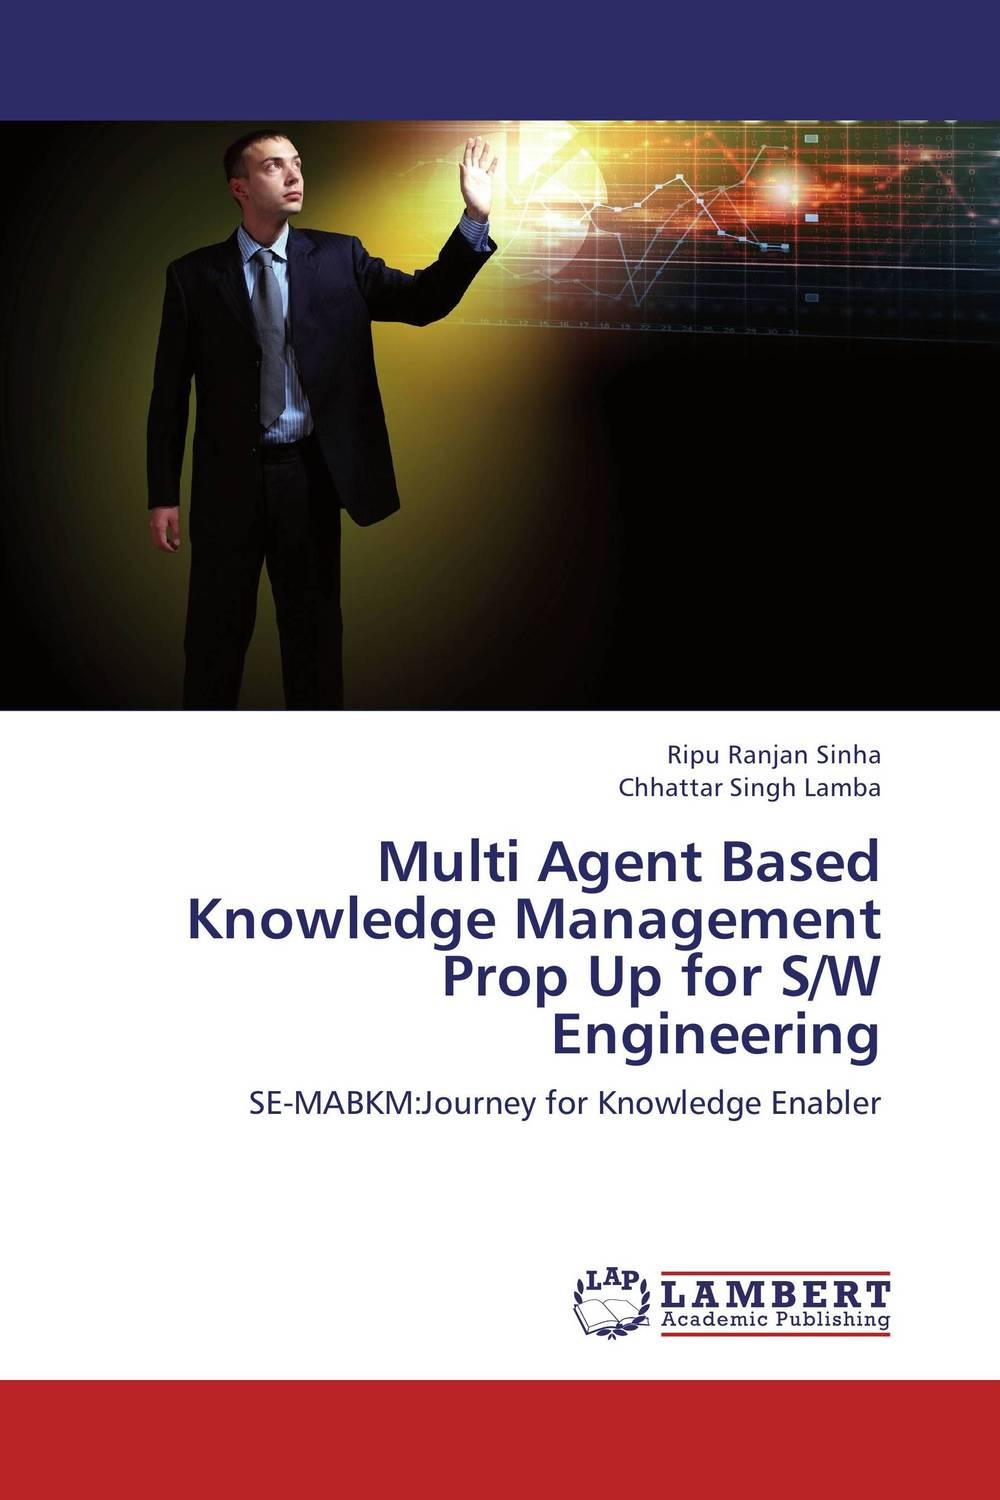 Multi Agent Based Knowledge Management Prop Up for S/W Engineering ban mustafa and najla aldabagh building an ontology based access control model for multi agent system